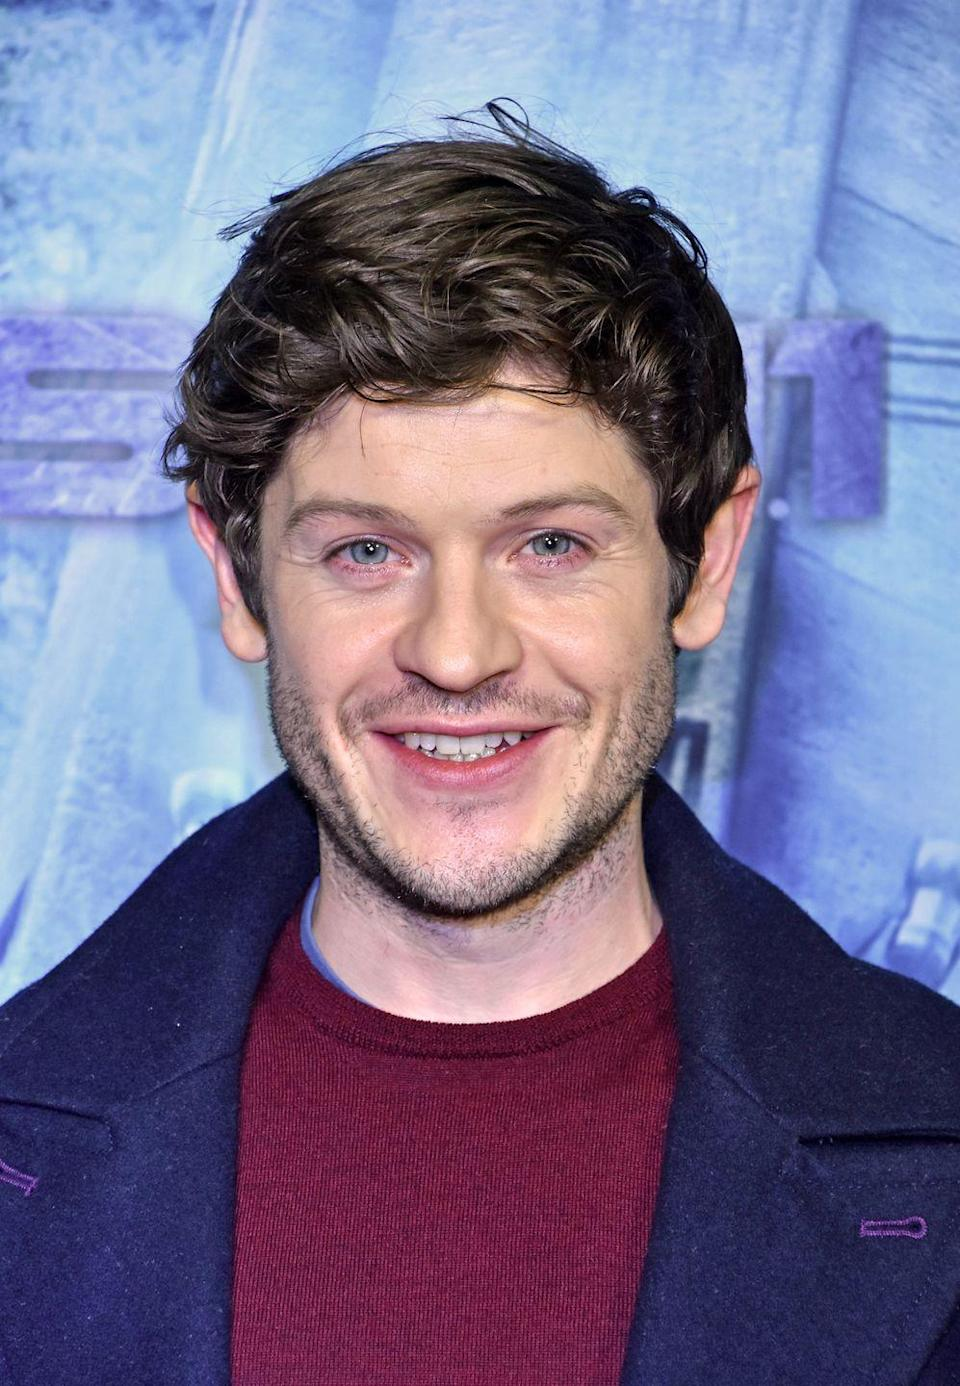 """<p><strong>The role: </strong><a href=""""http://www.telegraph.co.uk/culture/tvandradio/game-of-thrones/11499178/10-things-we-learnt-about-Ramsay-Snow-actor-Iwan-Rheon.html"""" rel=""""nofollow noopener"""" target=""""_blank"""" data-ylk=""""slk:Jon Snow"""" class=""""link rapid-noclick-resp"""">Jon Snow</a> in <em>Game of Thrones</em> (2011-2018)</p><p><strong>Who *actually* played it:</strong> Kit Harington</p><p><strong>The role they played instead:</strong> Ramsay Bolton/Ramsay Snow</p><p>Even though Rheon's role was memorable, it was also one of the most hated characters in <em>Game of Thrones </em>history—and that's saying a lot.</p>"""